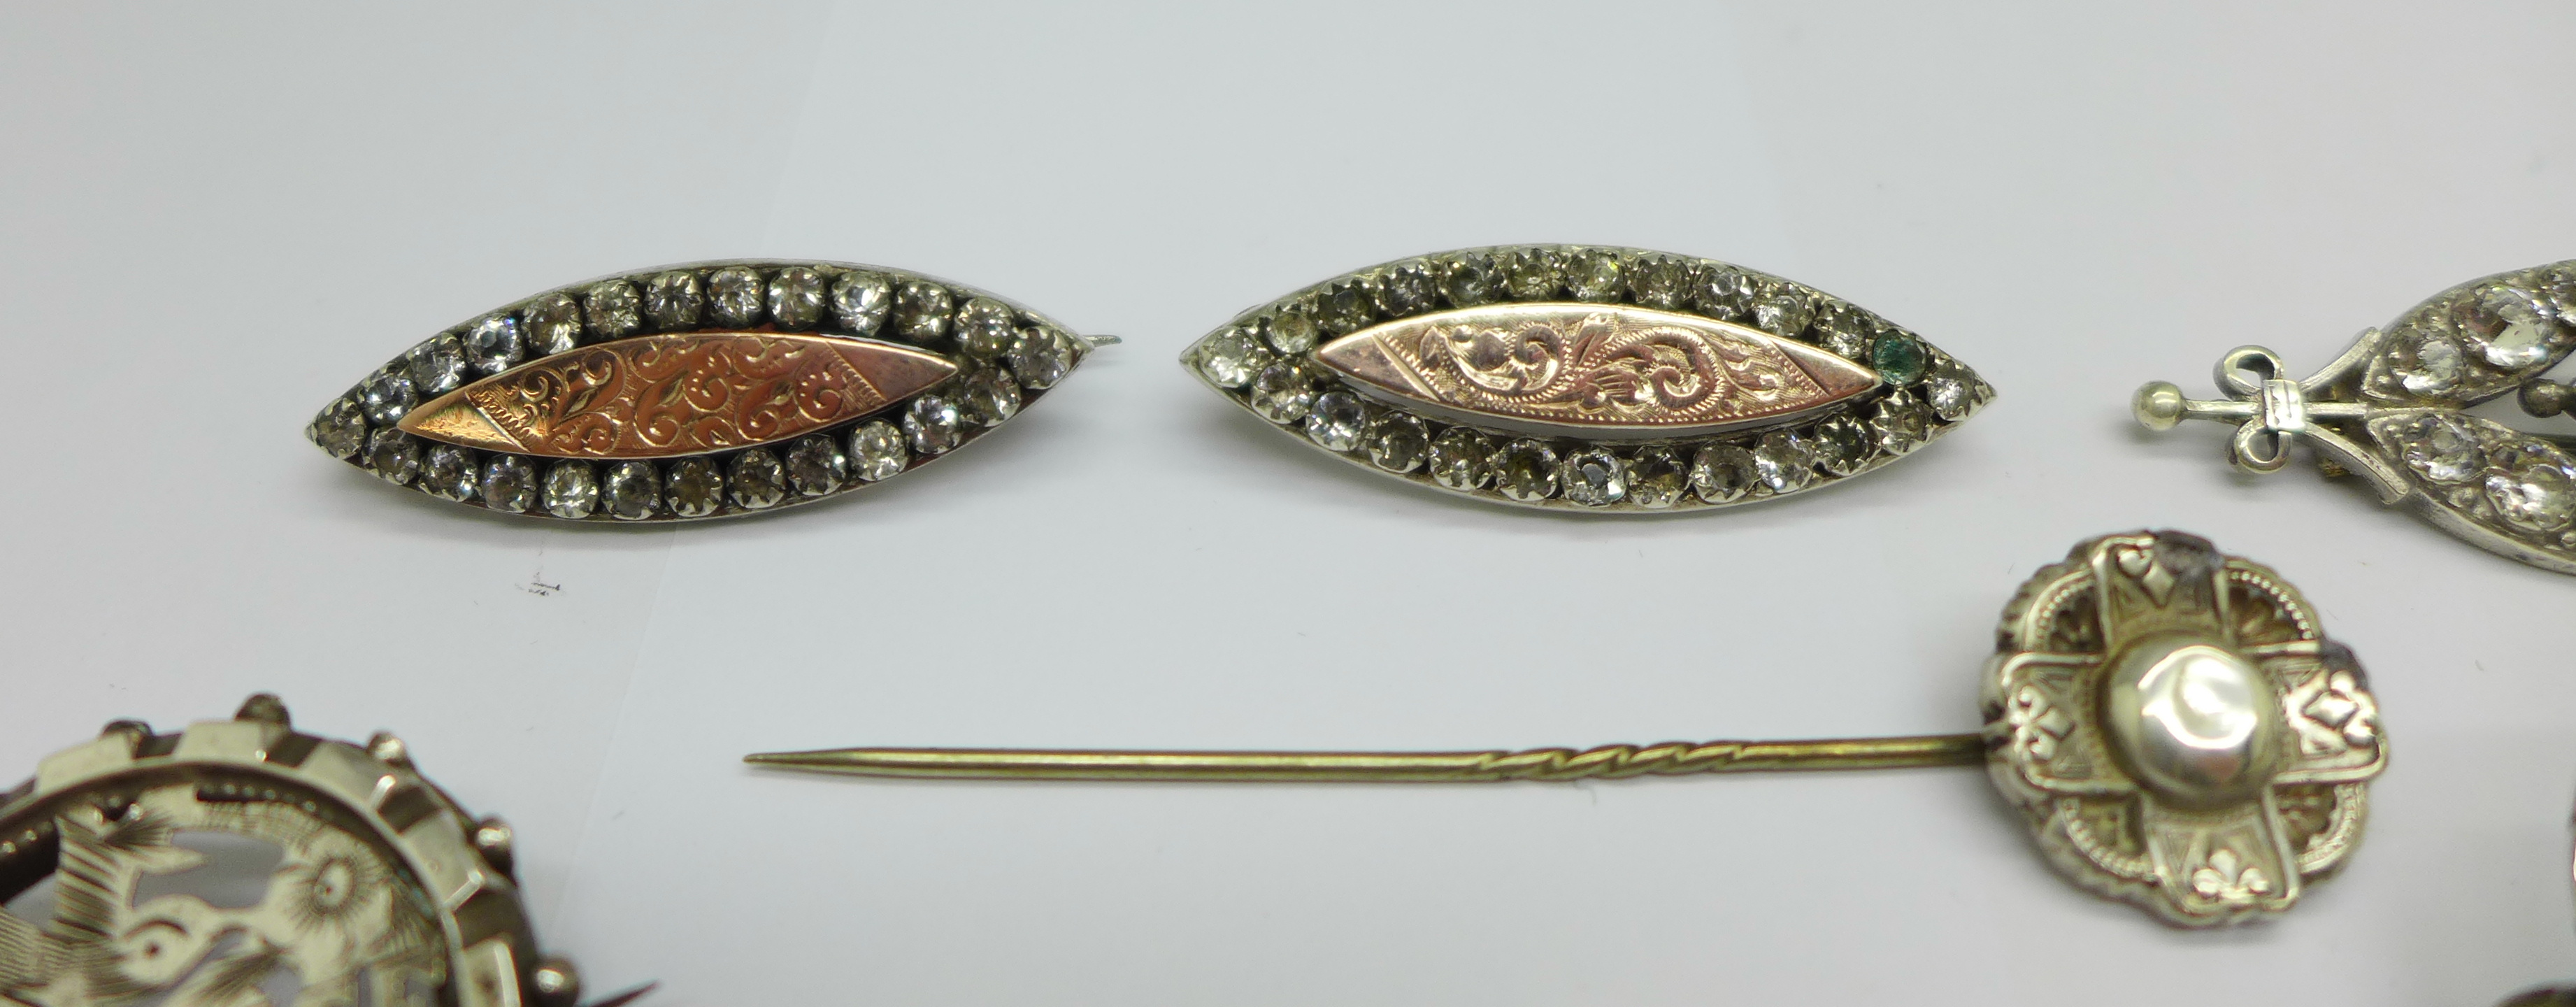 Two hallmarked Victorian silver and gilt fronted brooches, four other brooches, two stick pins and a - Image 2 of 4